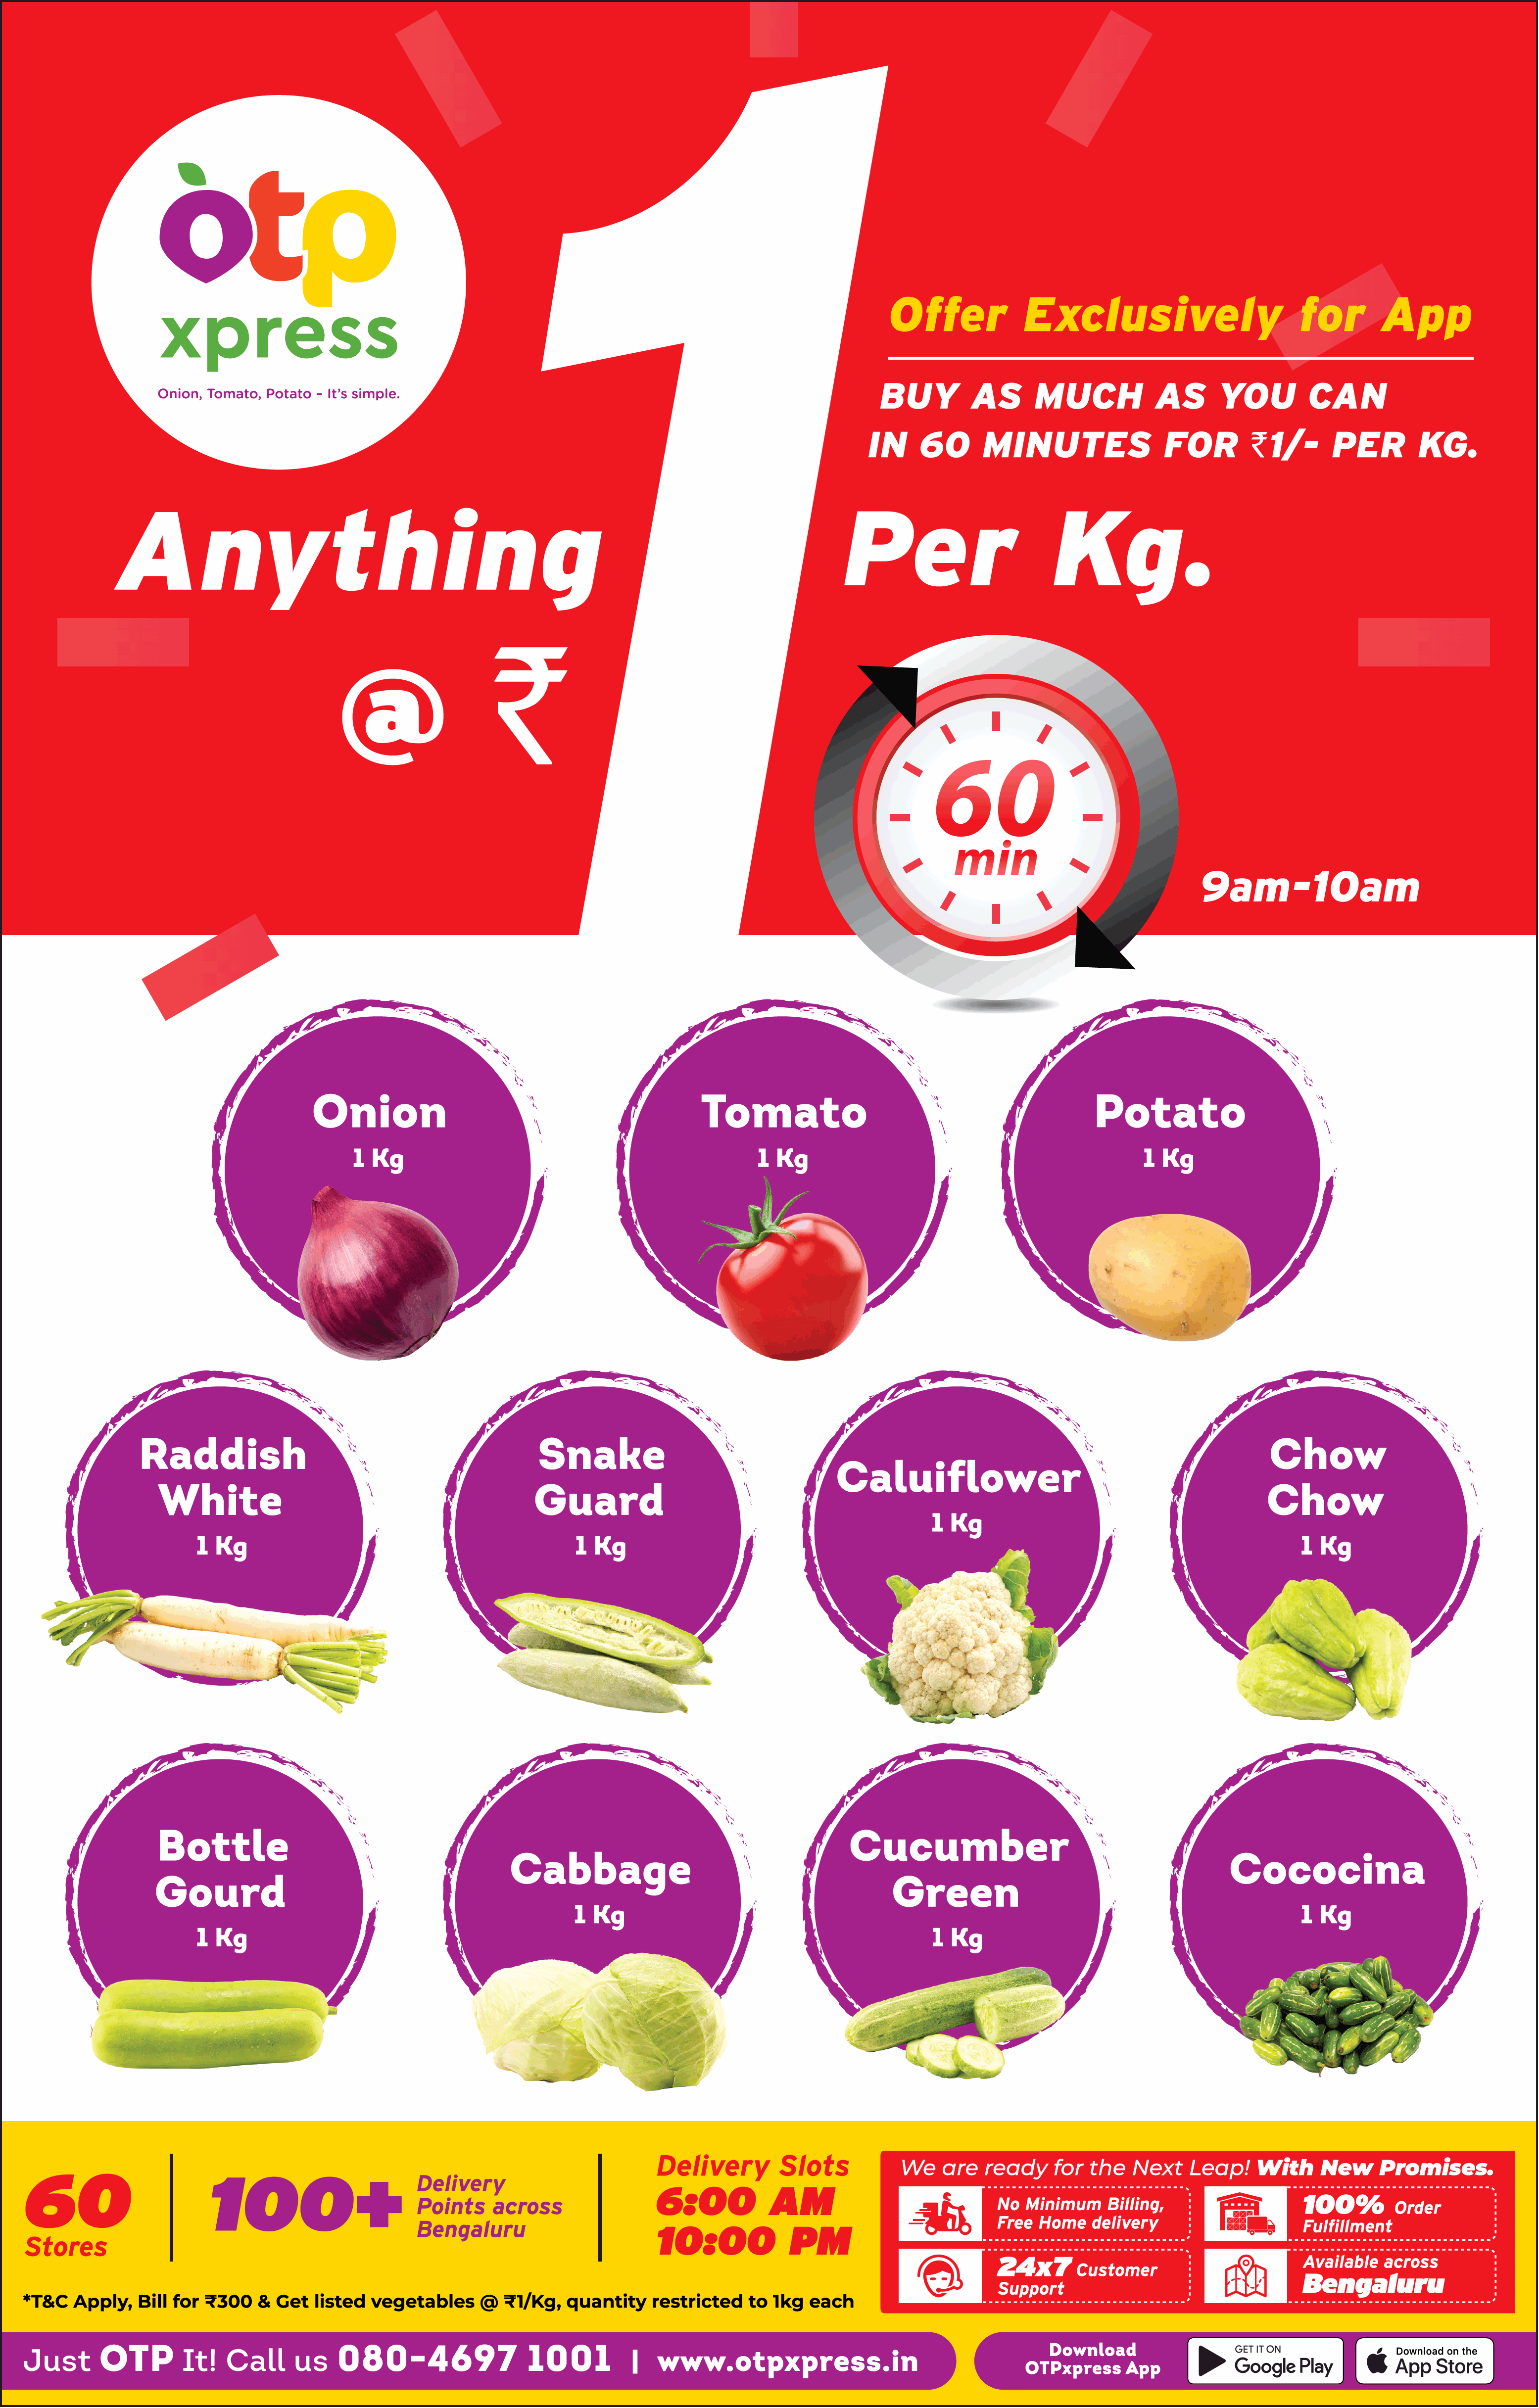 otp-xpress-buy-as-much-as-you-can-in-60-minutes-for-rs-1-per-kg-onion-tomato-potato-ad-times-of-india-bangalore-9-7-2021